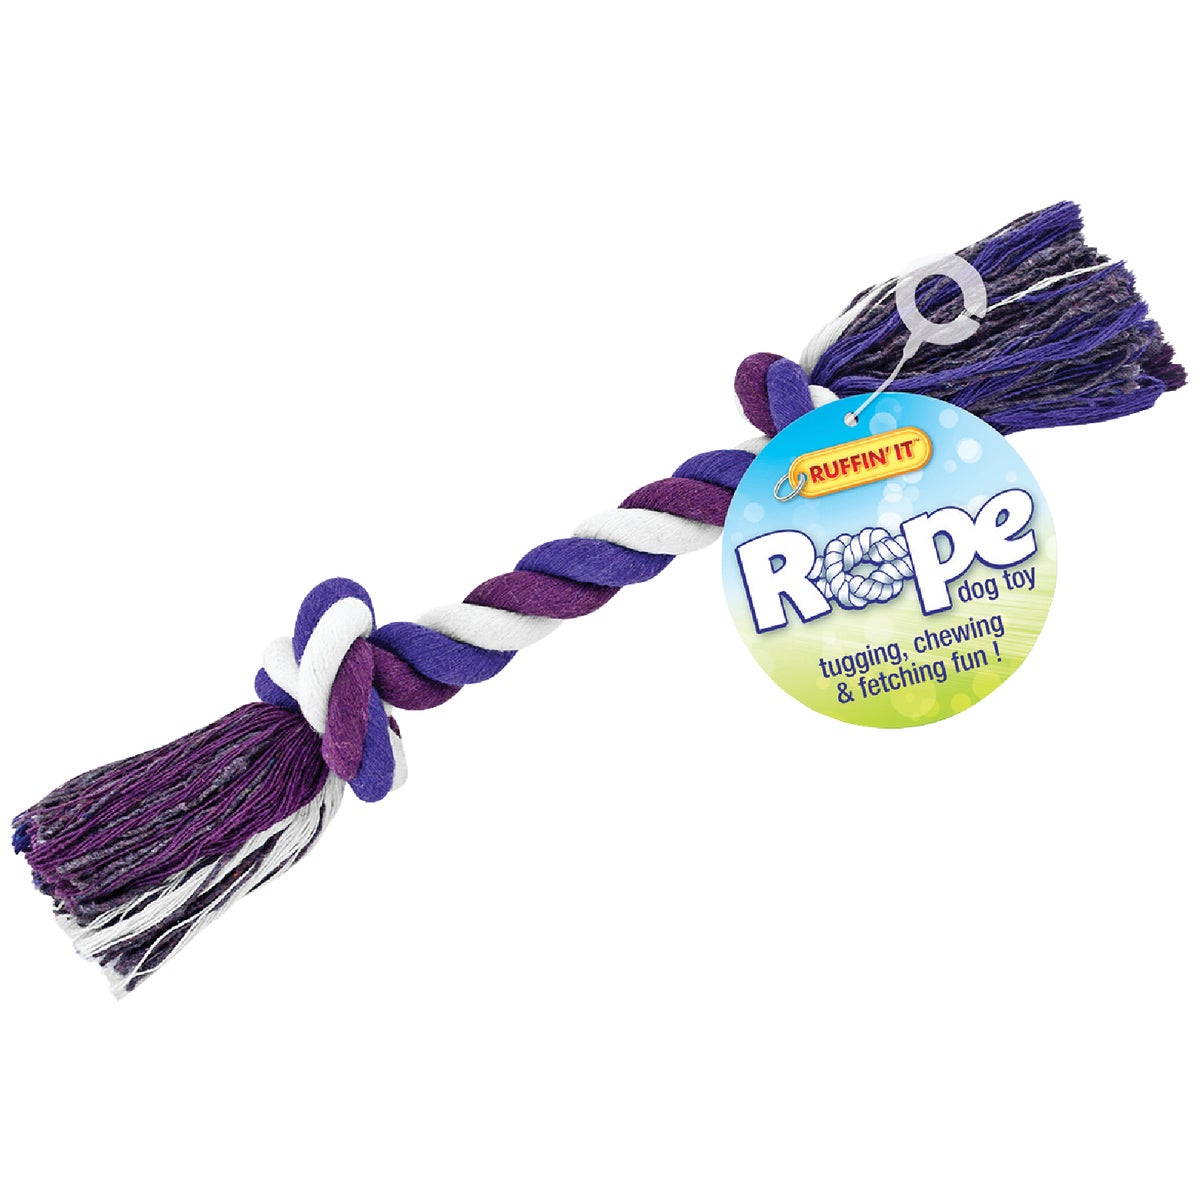 MED 2 KNOT CLR TUG ROPE - 18236 by Westminster Pet